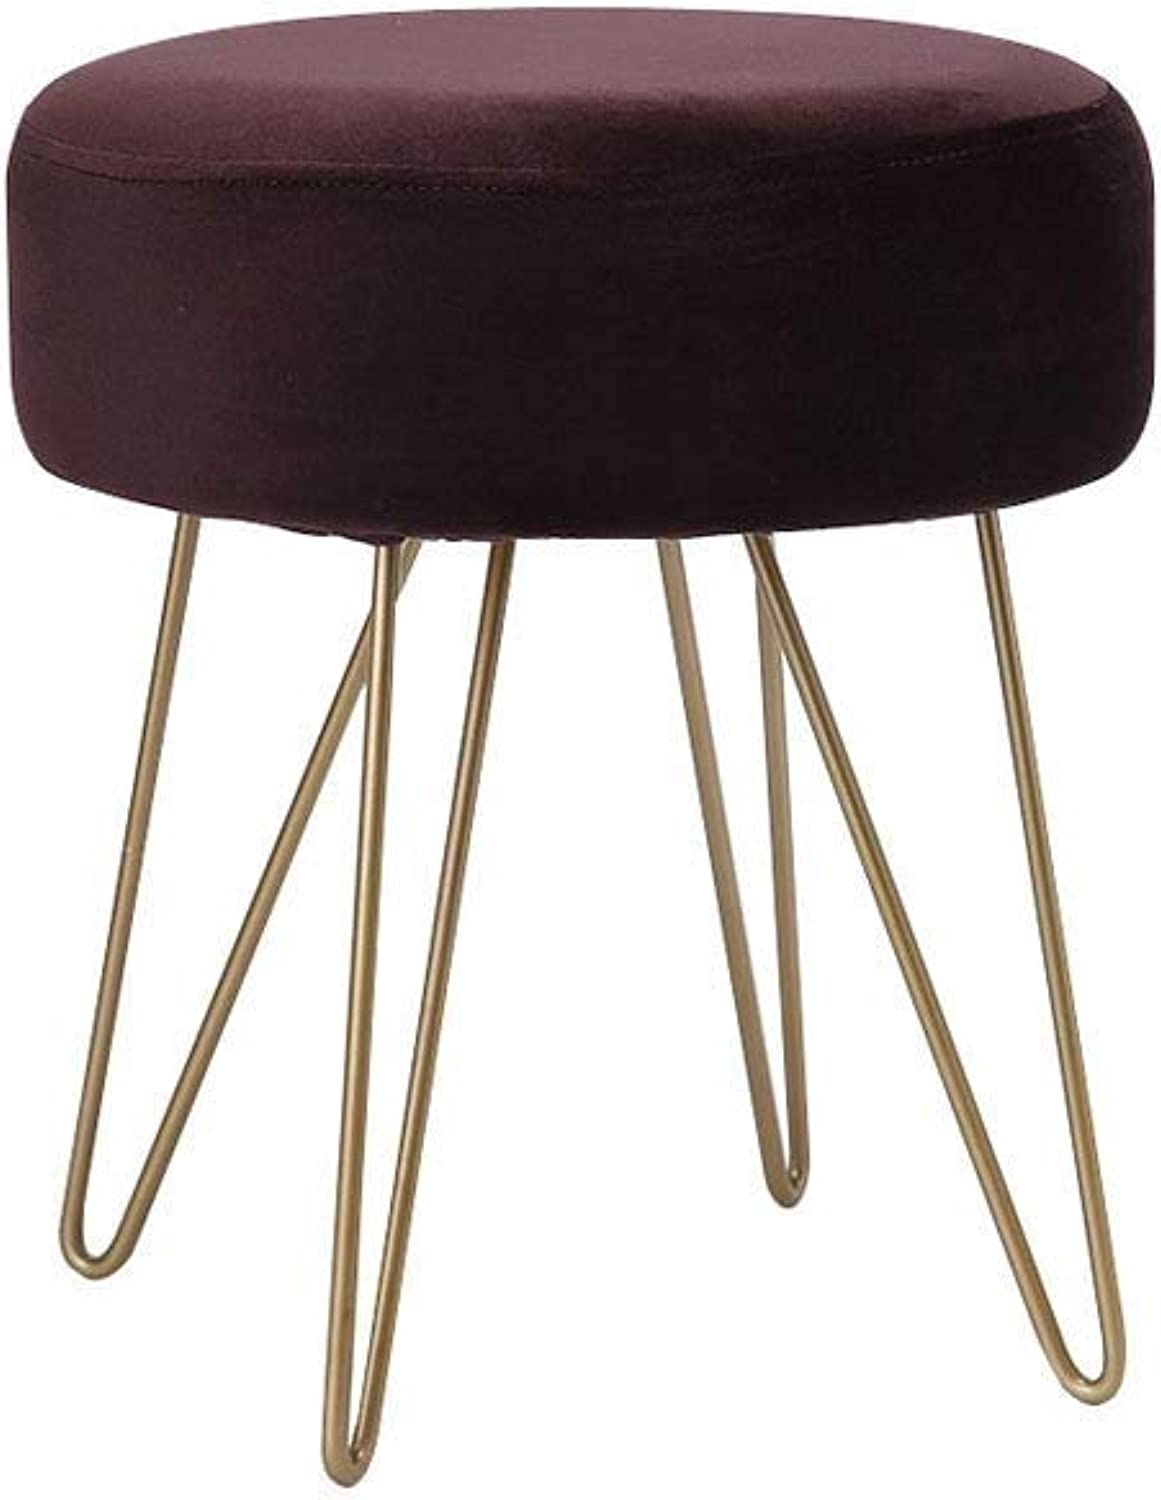 Round Stool Stainless Steel Stool Legs, Soft Cushion Bedroom Living Room Dressing Table Clothing Store bluee 35cm × 40cm (Size   Brown)